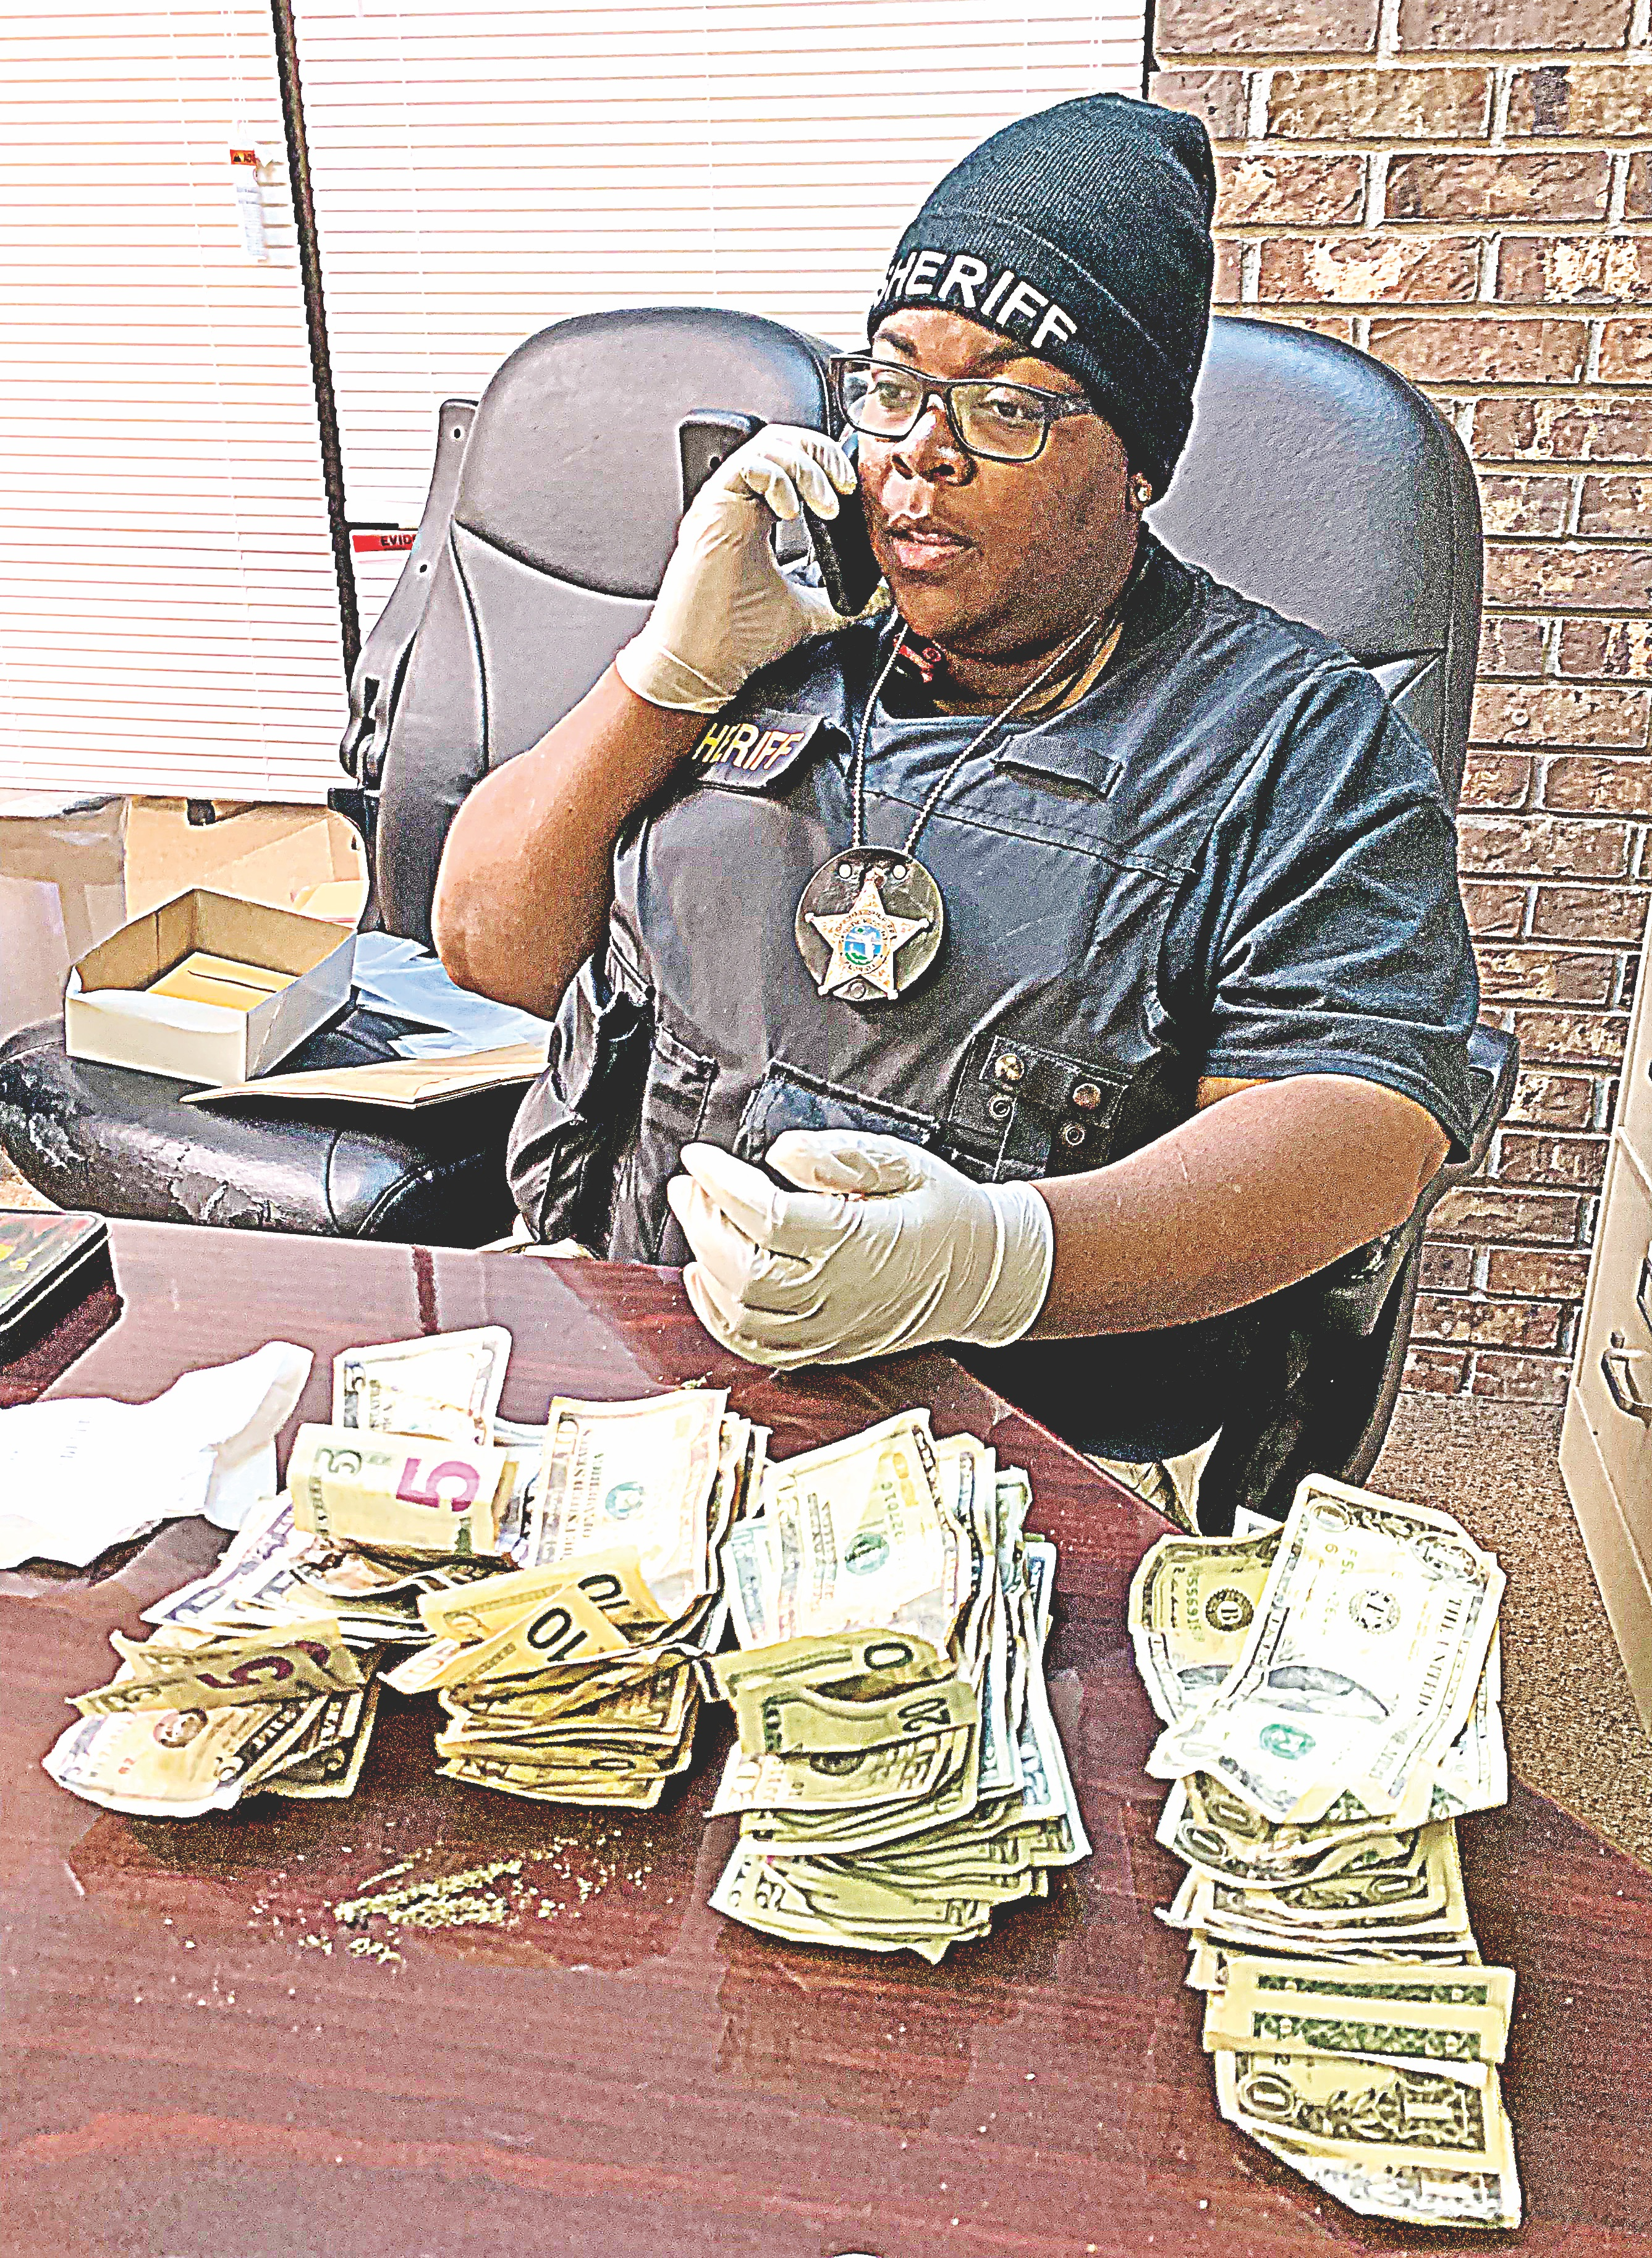 Drugs, cash, gun seized in recent felony busts – The Herald online